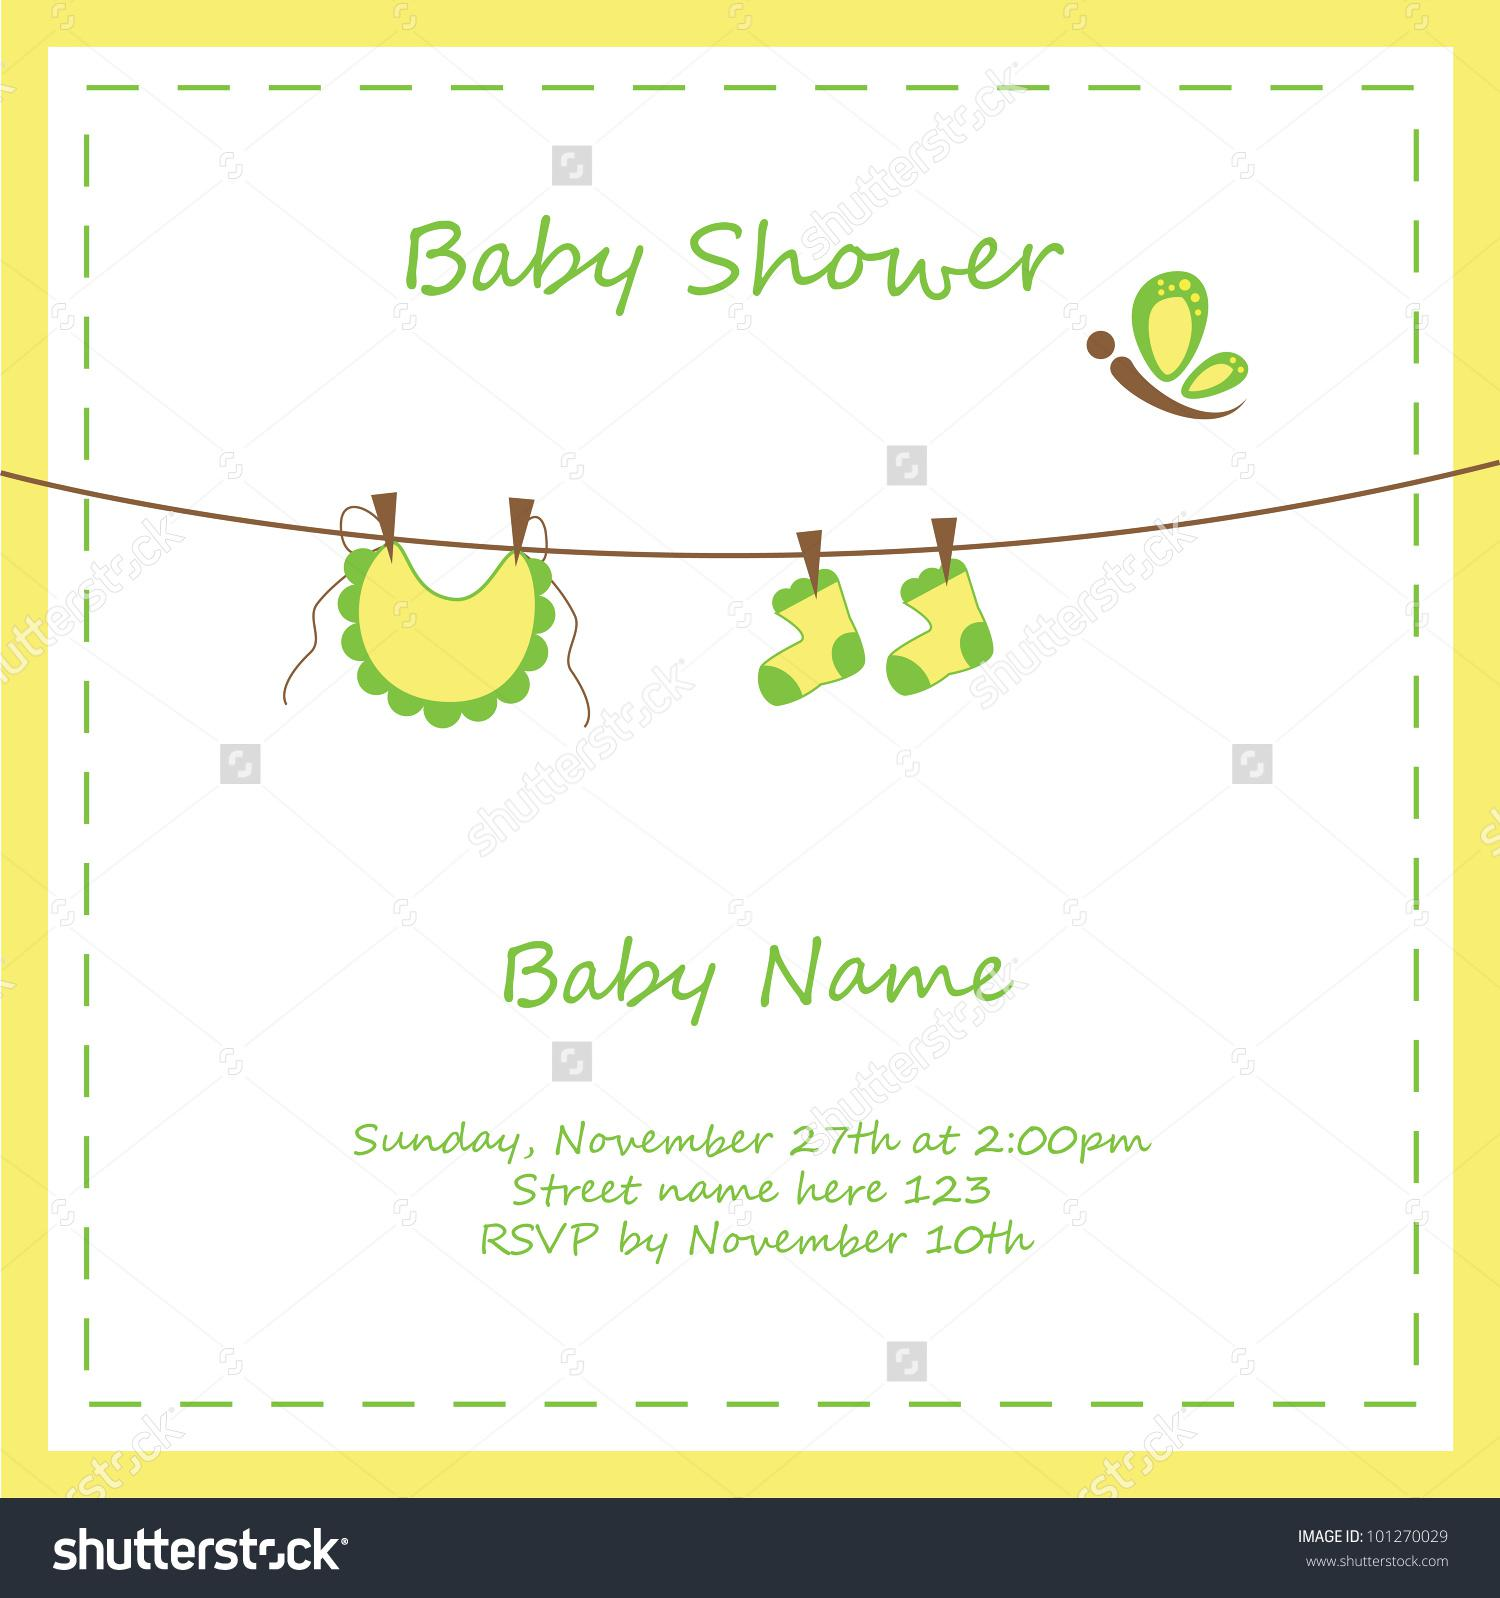 Neutral Baby Shower Invitation Templates